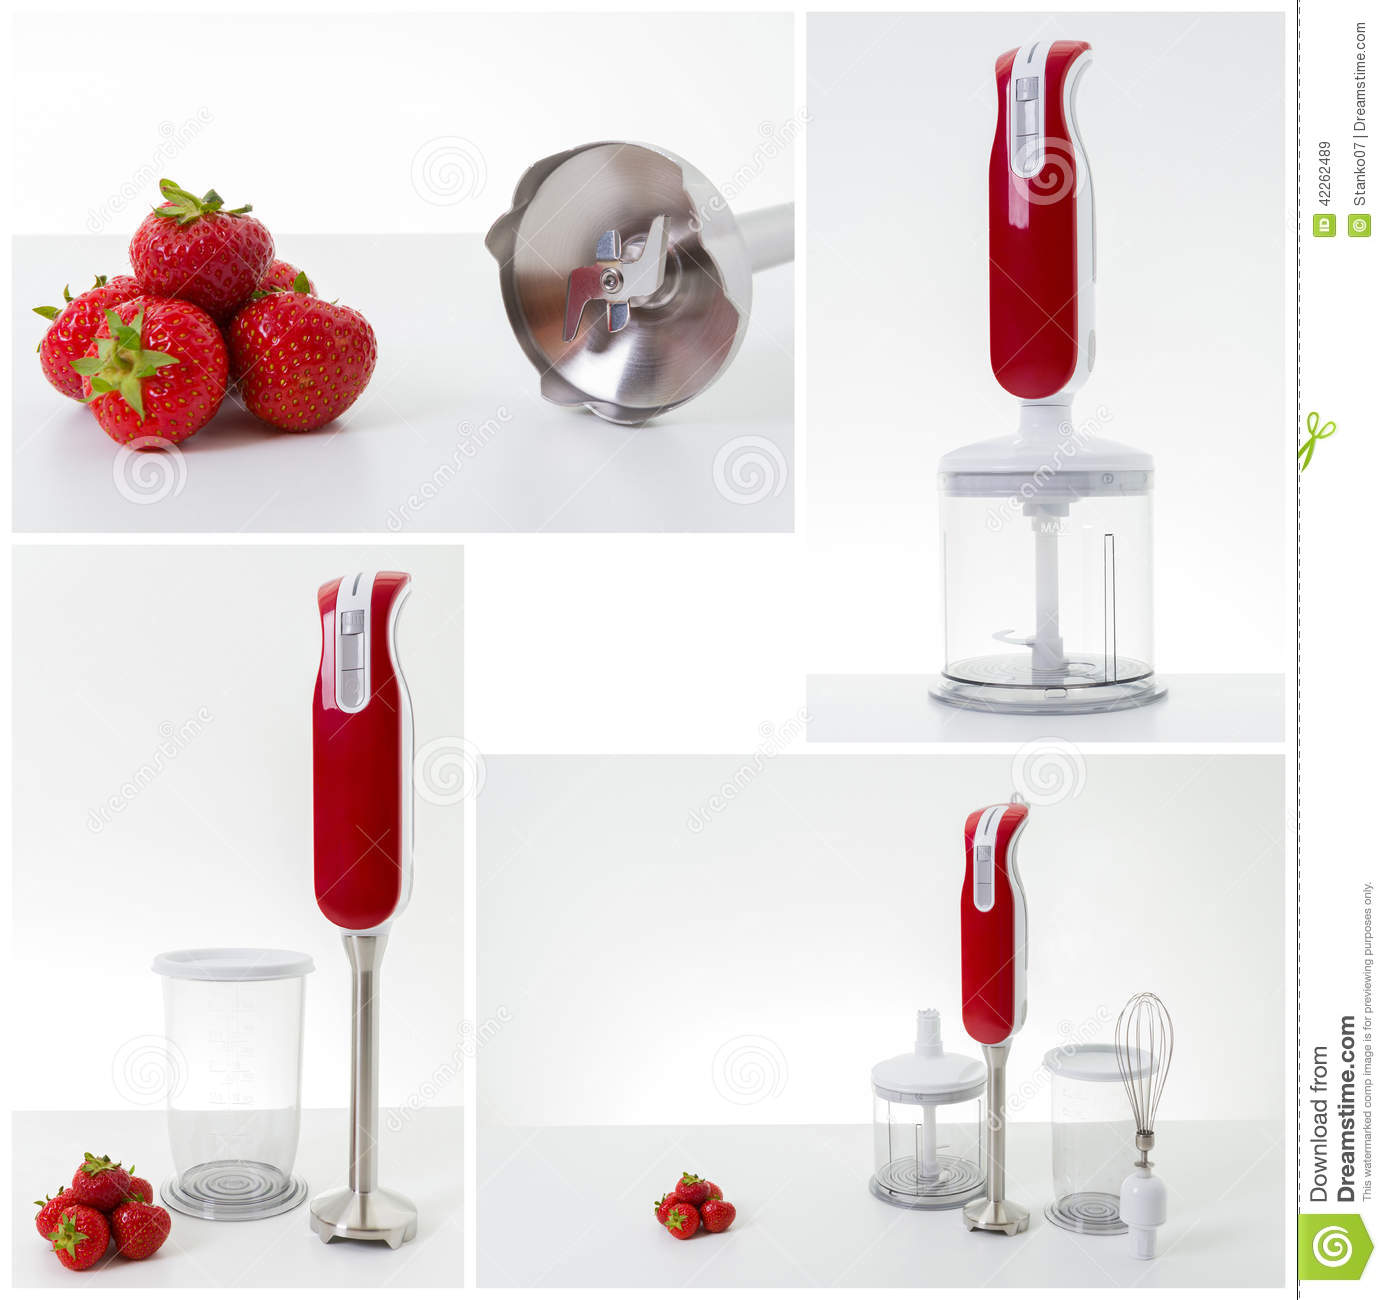 Electric hand mixer collage